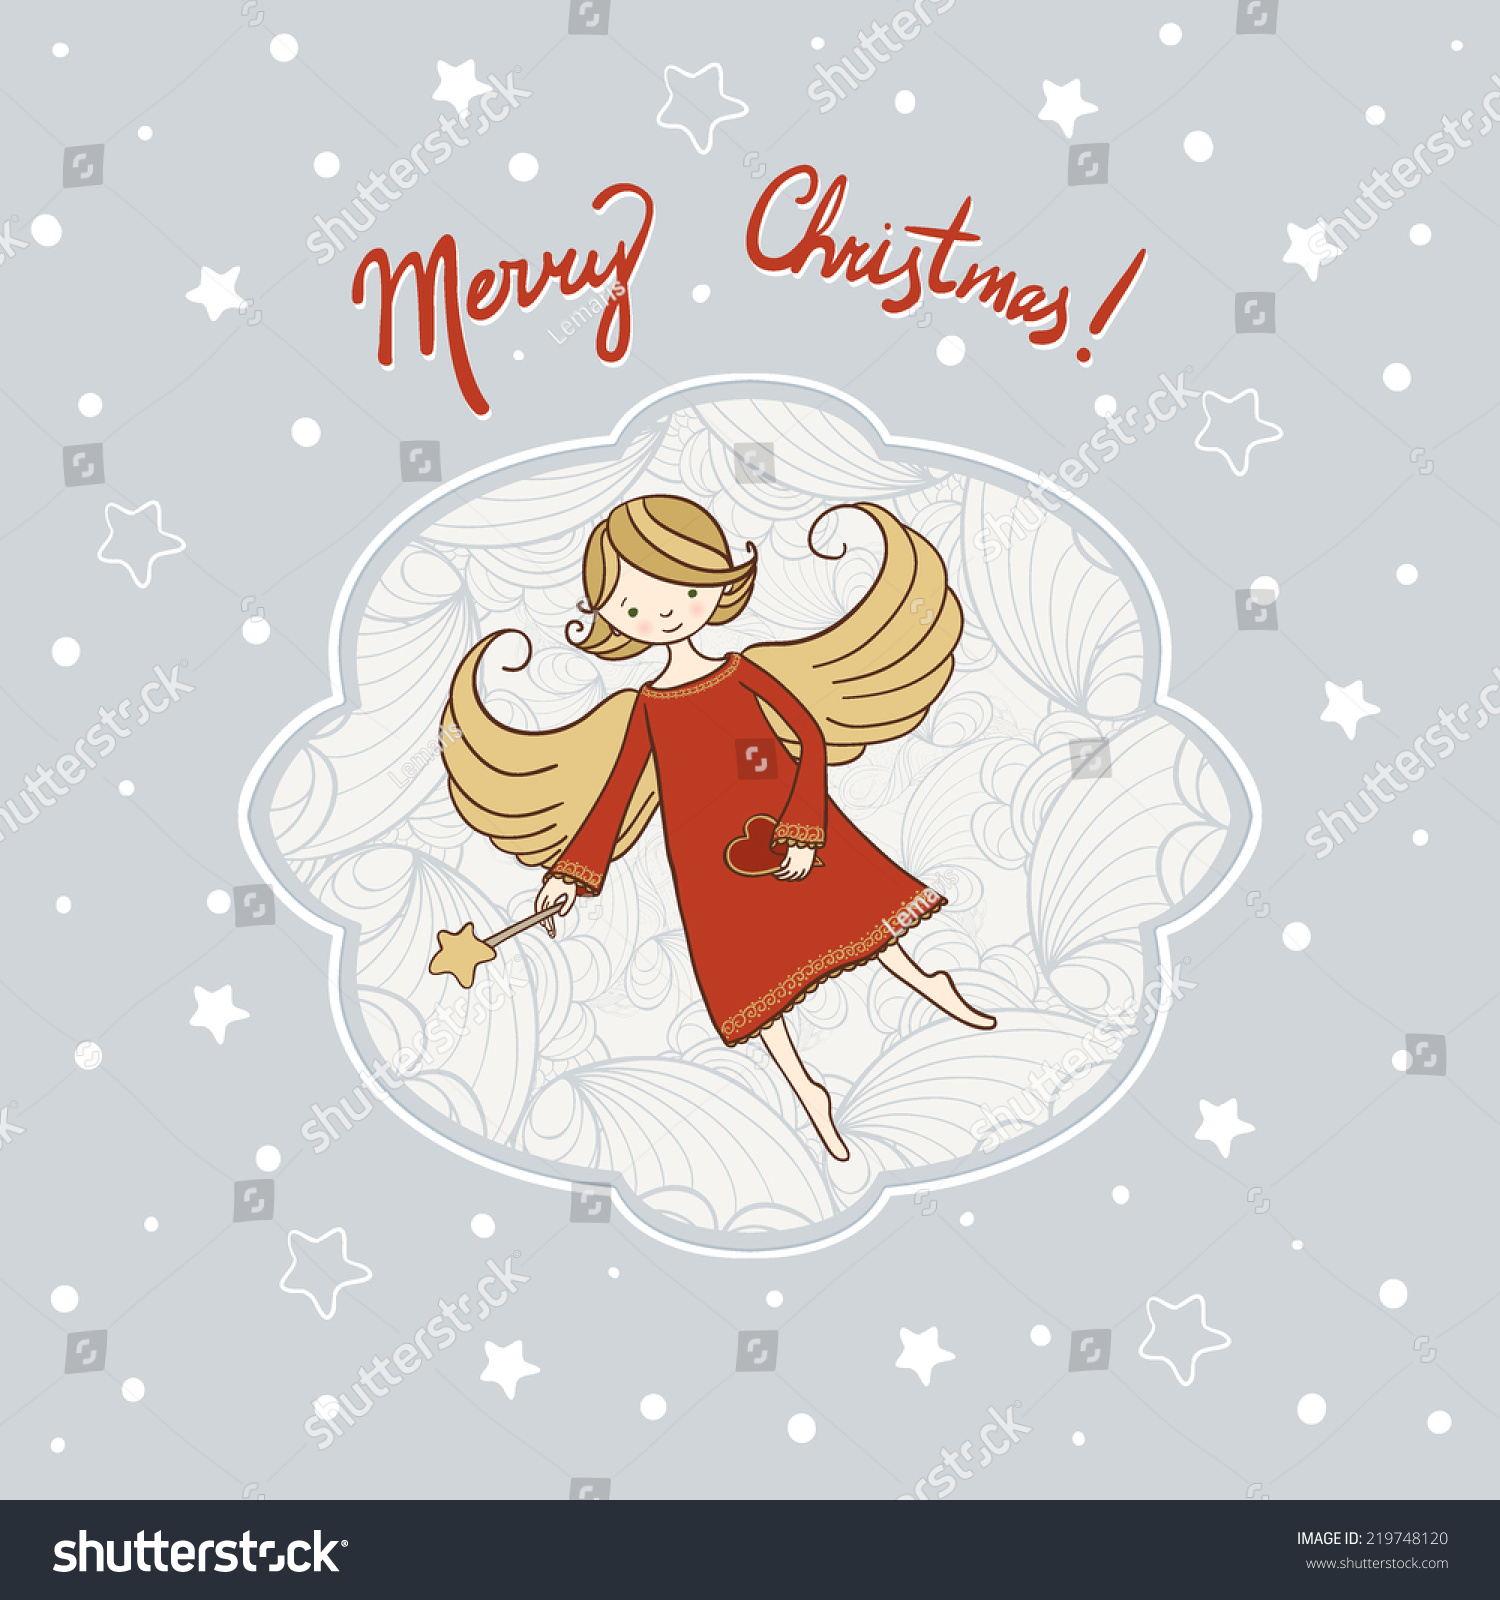 Vector Illustration Christmas Angel Can Be Stock Vector HD (Royalty ...